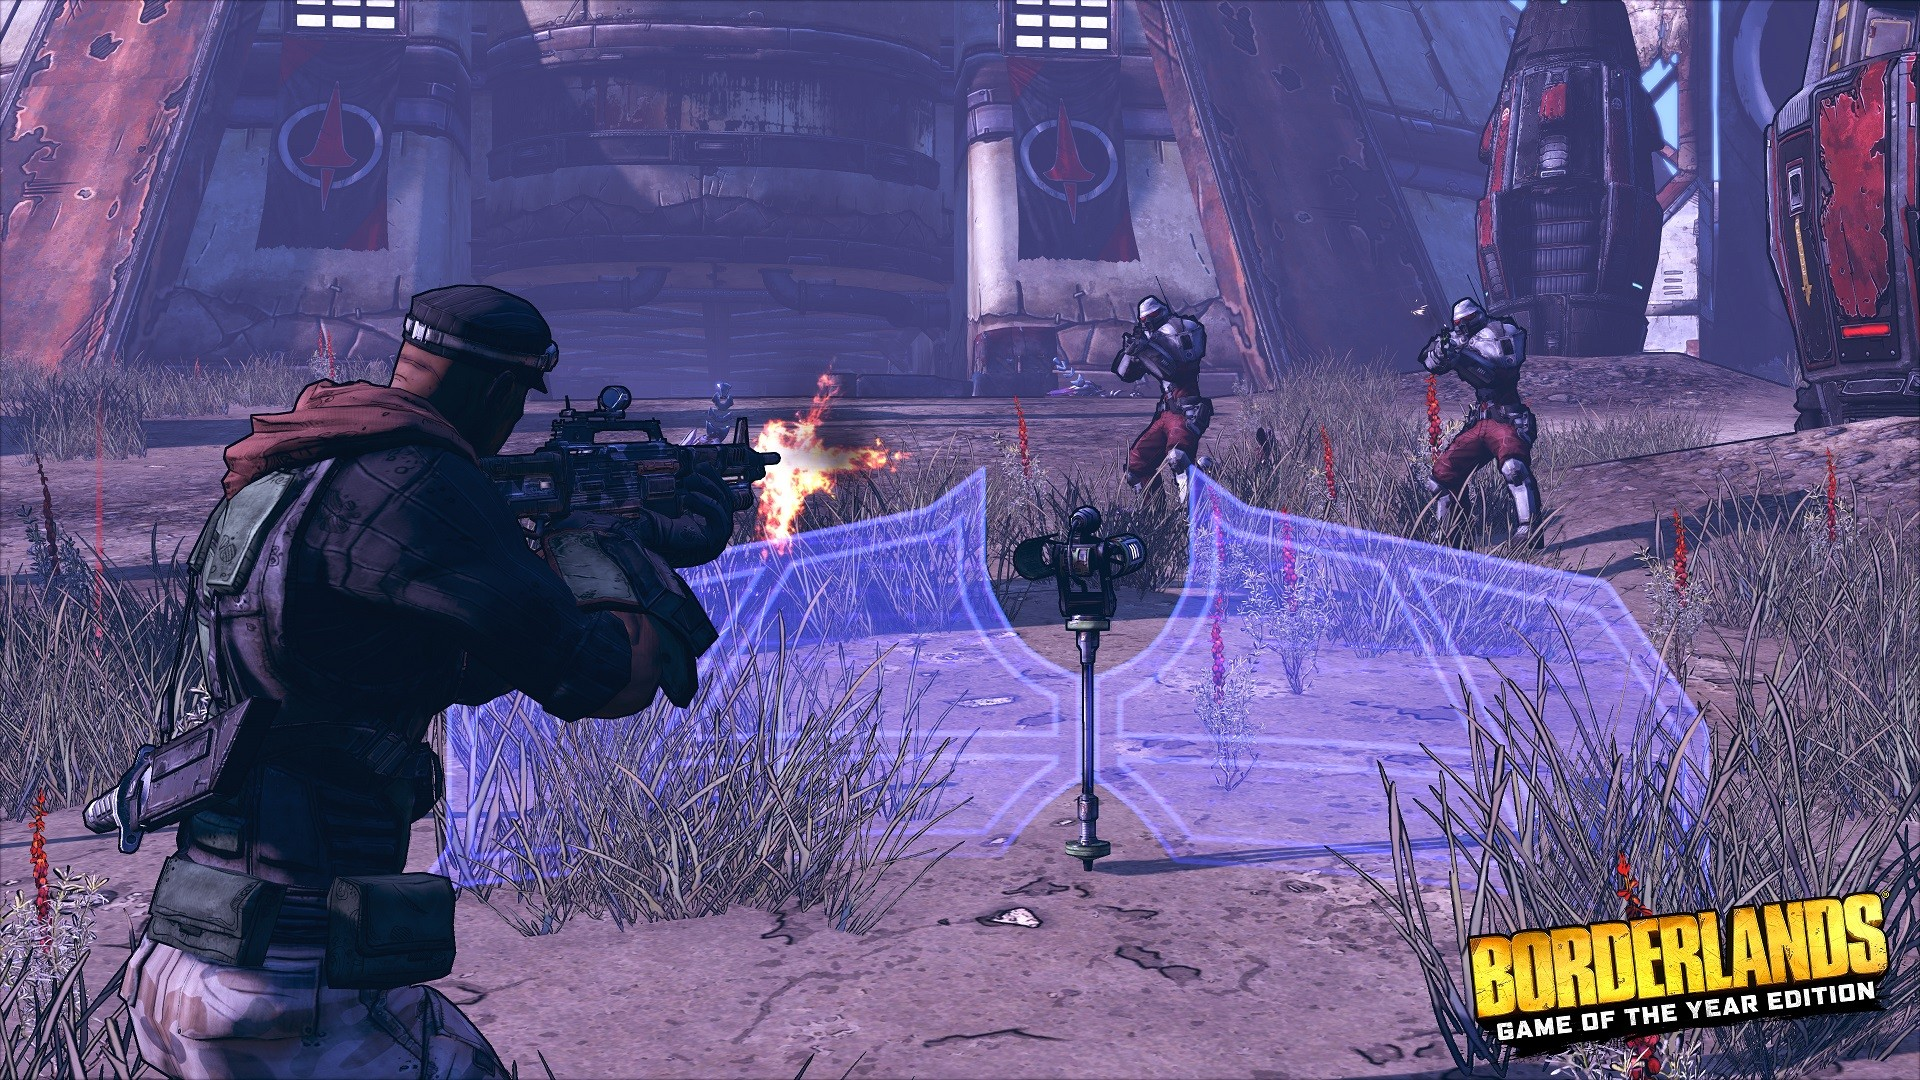 Co-Optimus - Video - Borderlands: Game of the Year Edition Coming to